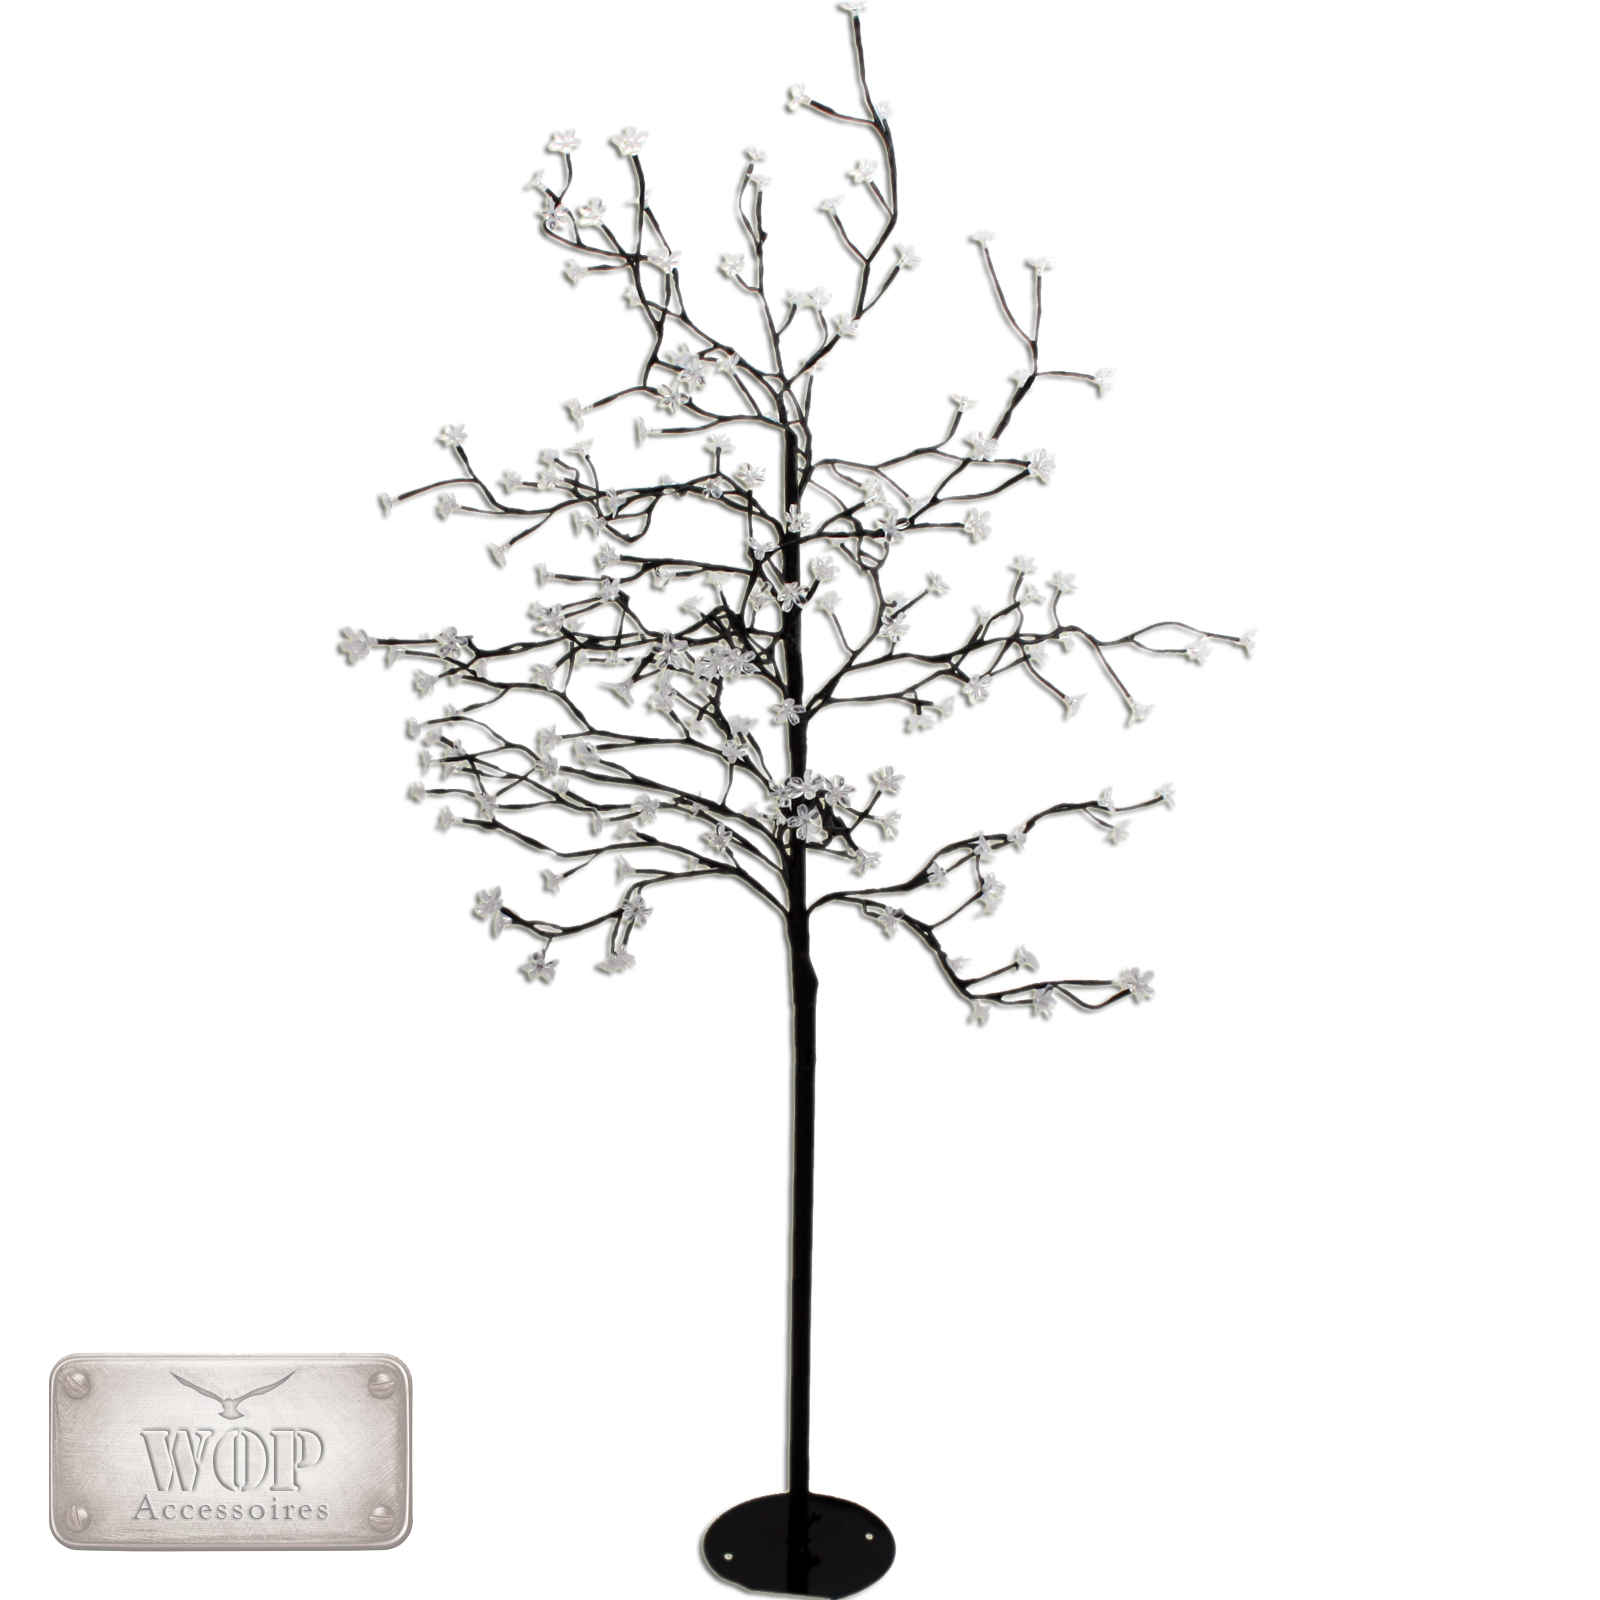 led baum lichtbaum leuchtbaum lichterkette 200 led 150cm silber schwarz wei ebay. Black Bedroom Furniture Sets. Home Design Ideas